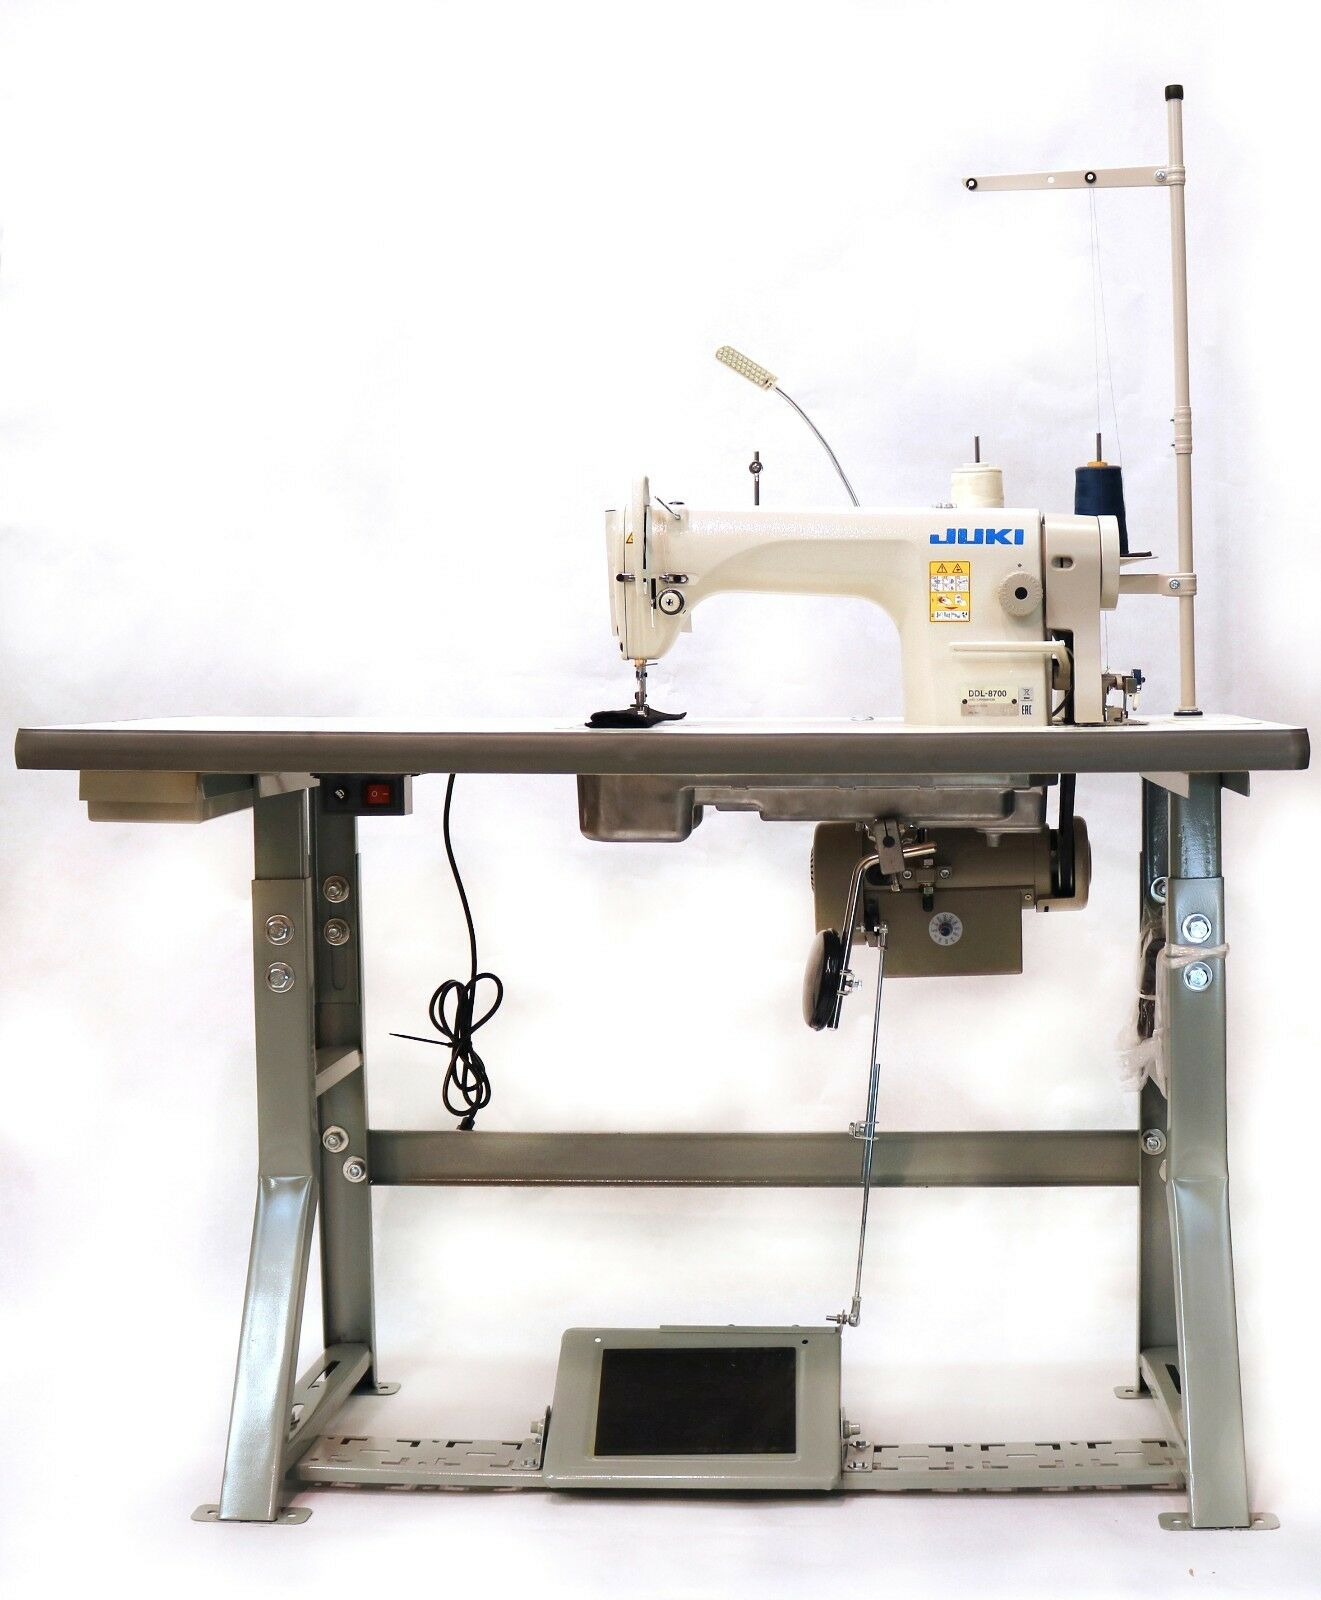 Juki Ddl-227 Industrial Sewing Machine With Extras for sale online | eBayeBay